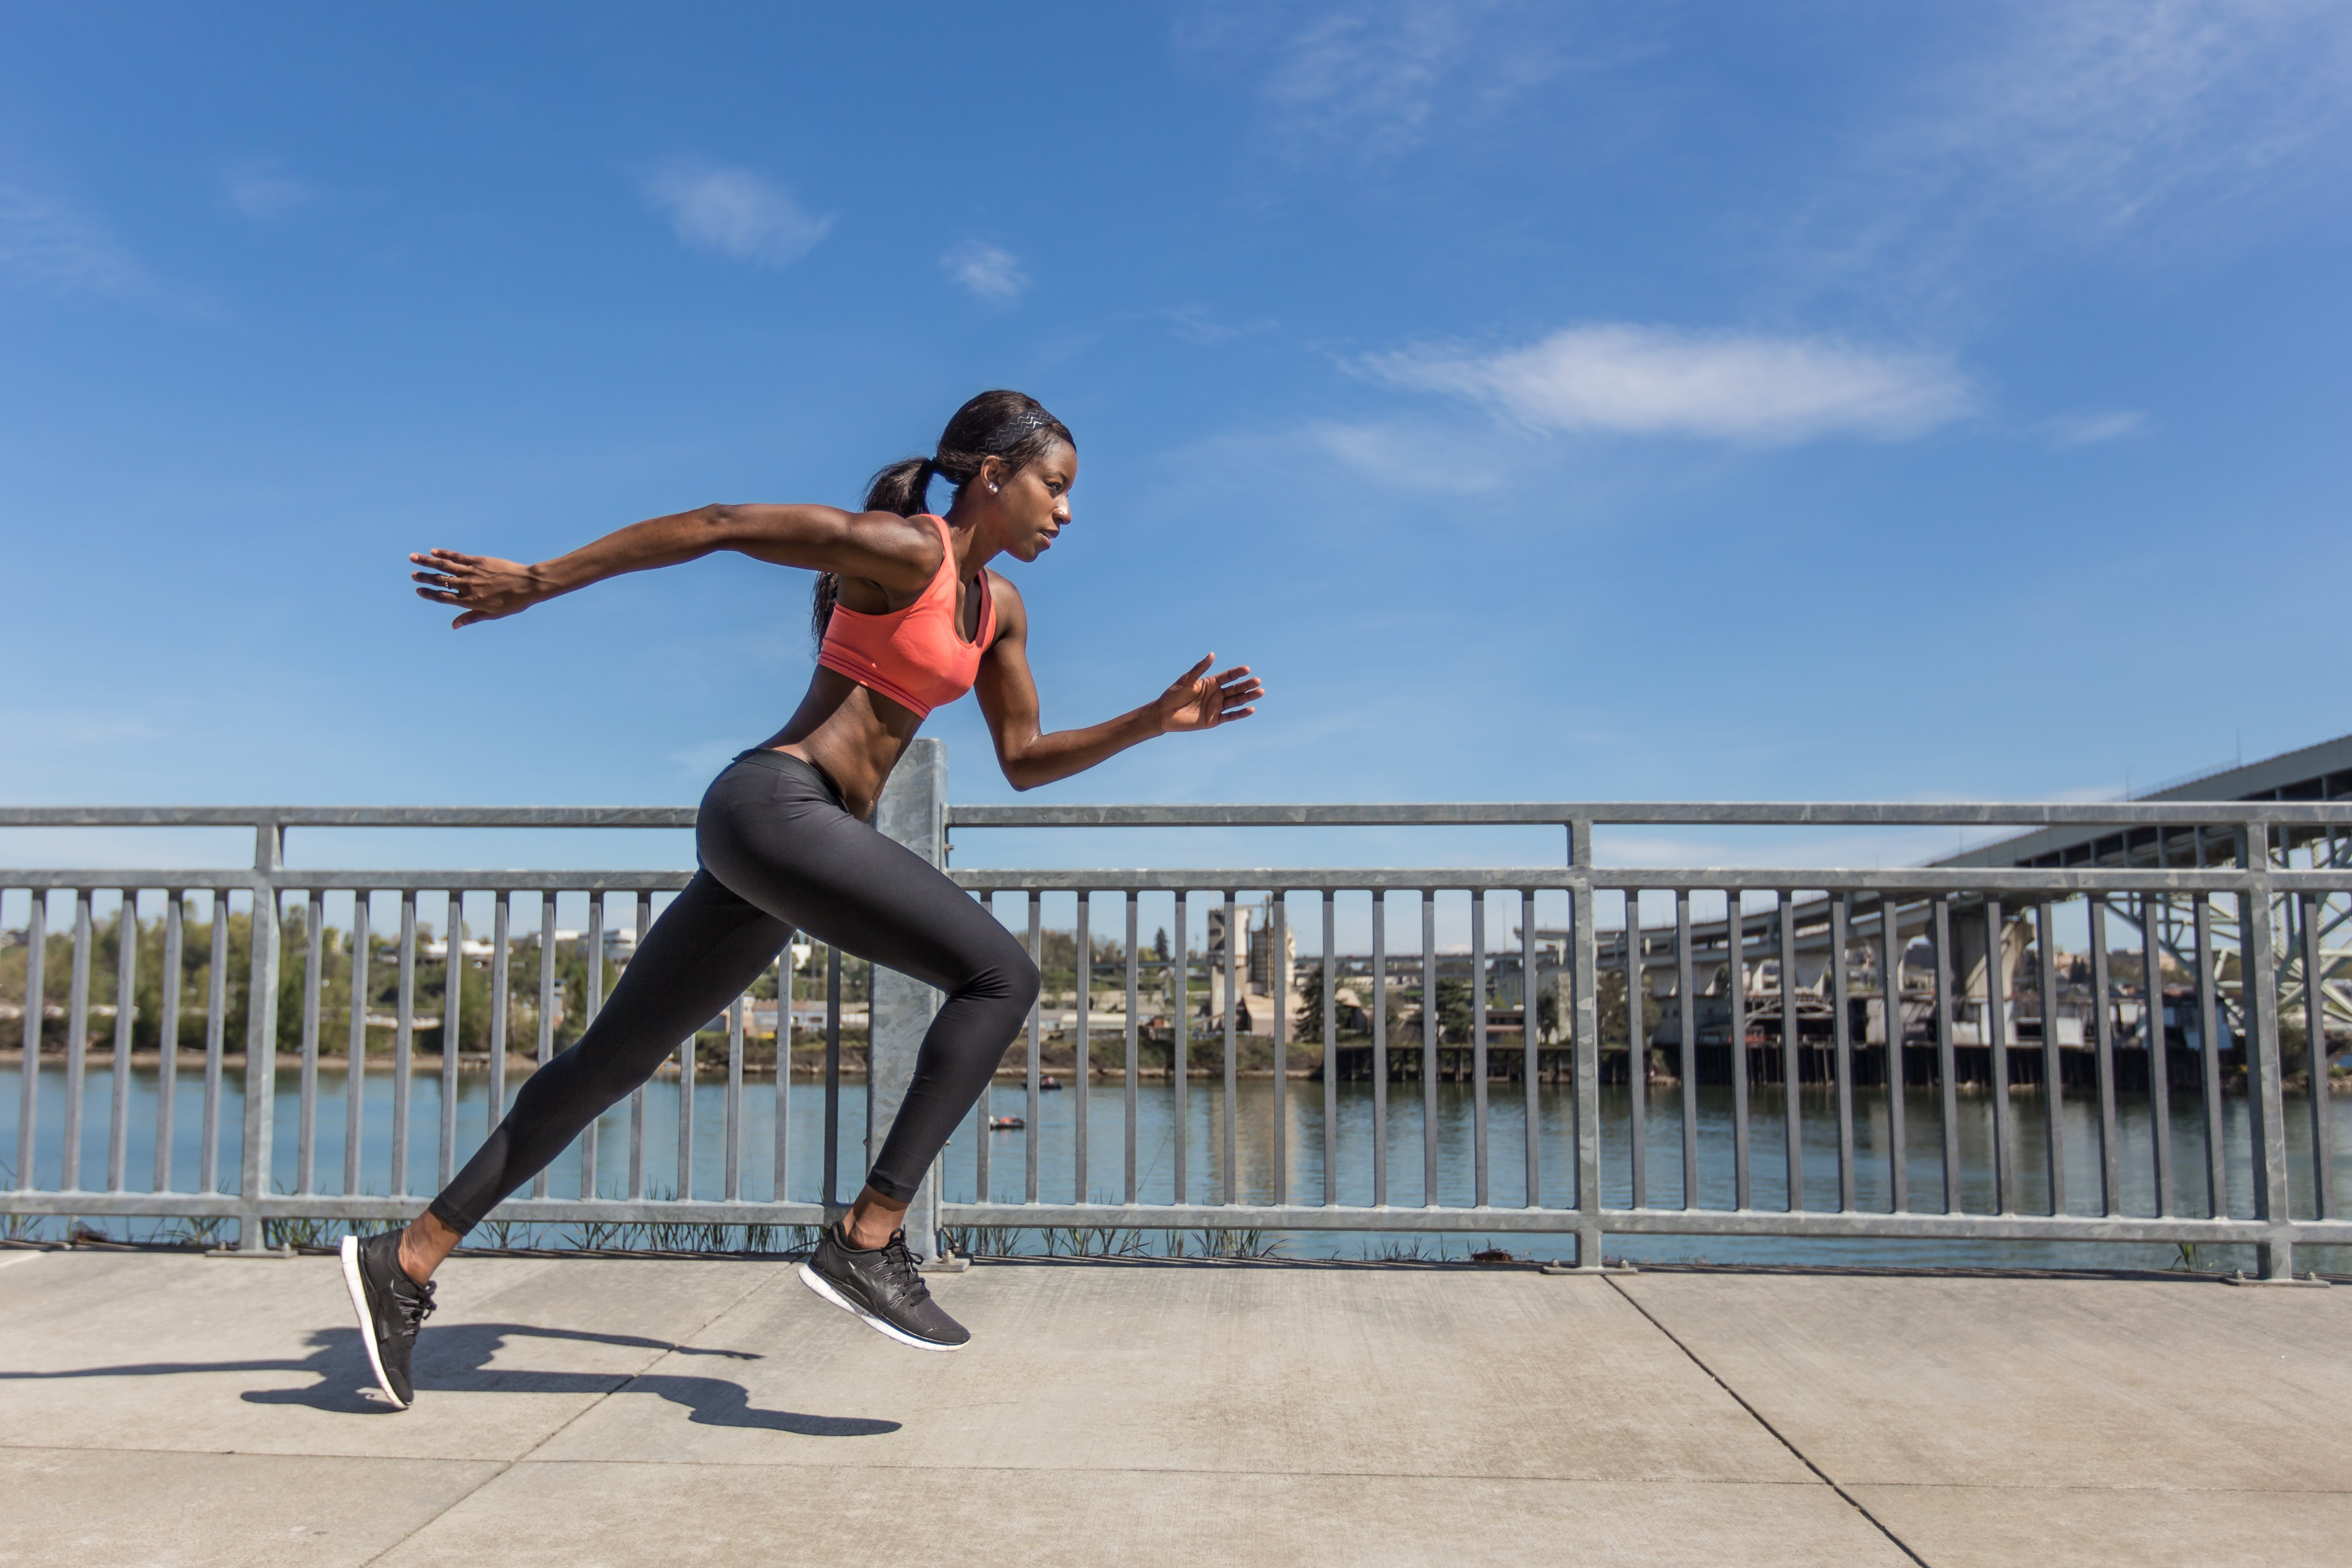 Why Adrenaline Speeds up Heart Rate